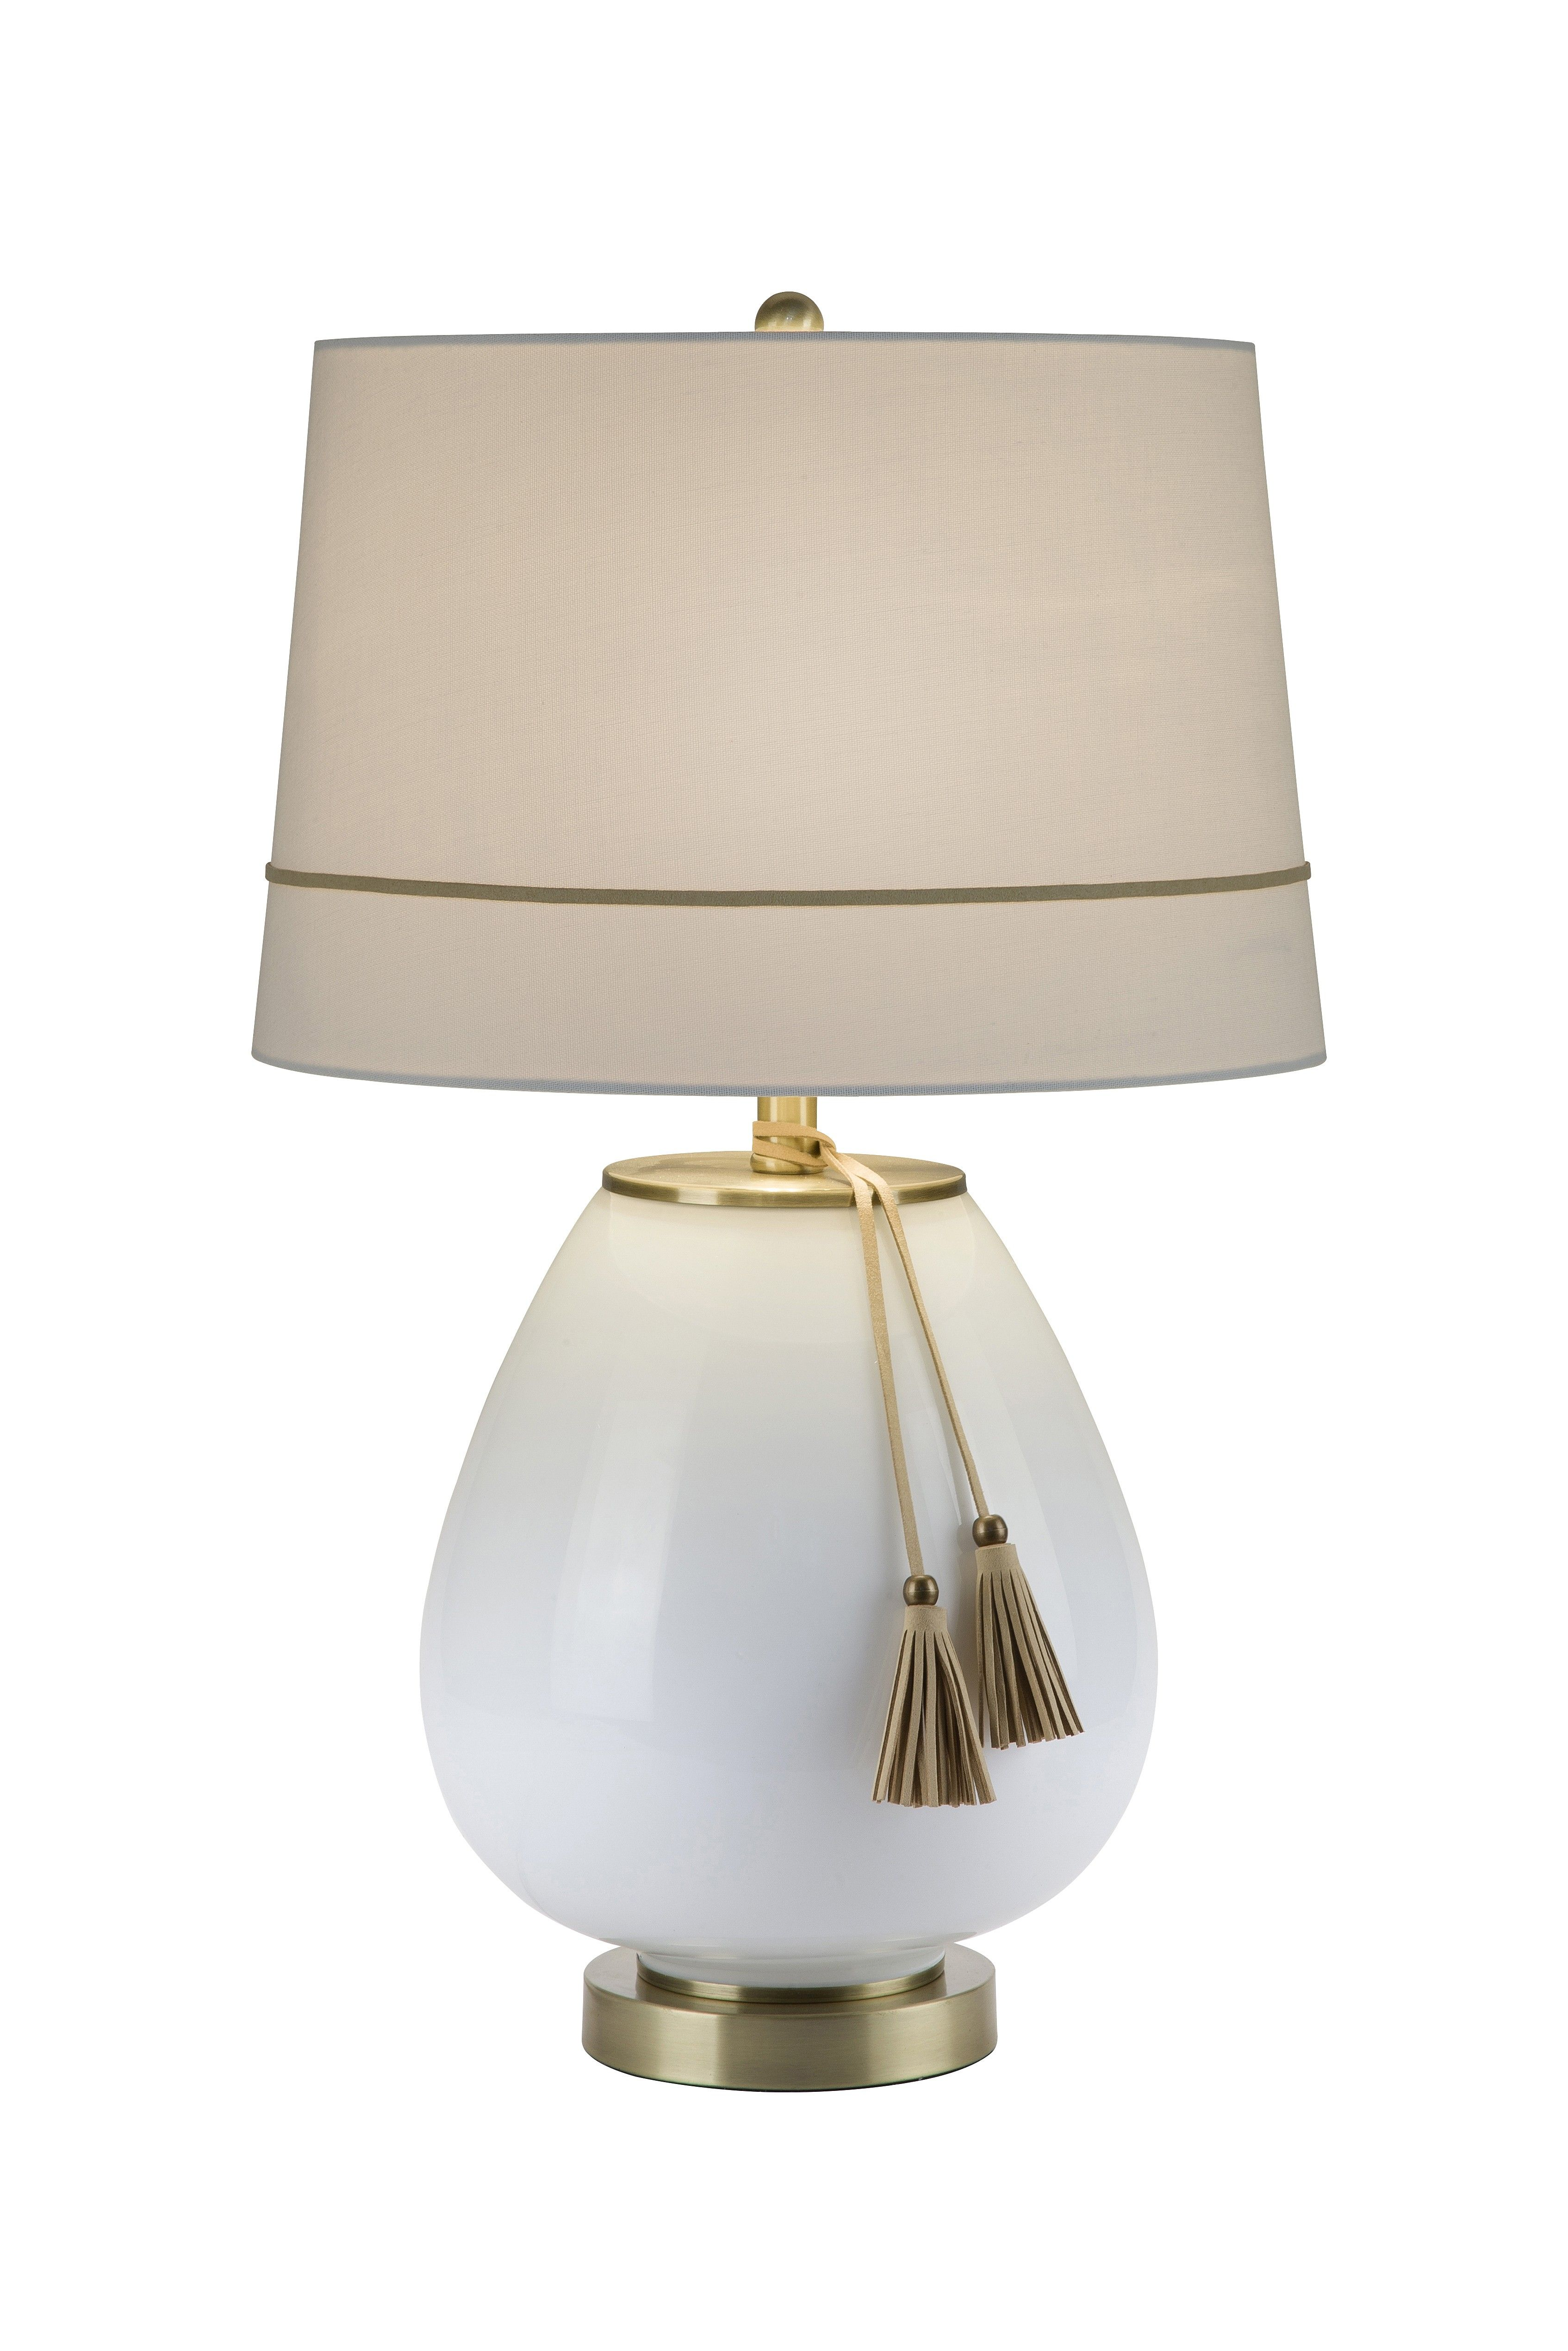 Featuring A Classic And Elegant Silhouette Our Ava Table Lamp Looks Lovely On A Bedside Table Or On A Dresser Table Lamp Lamp Cheap Table Lamps